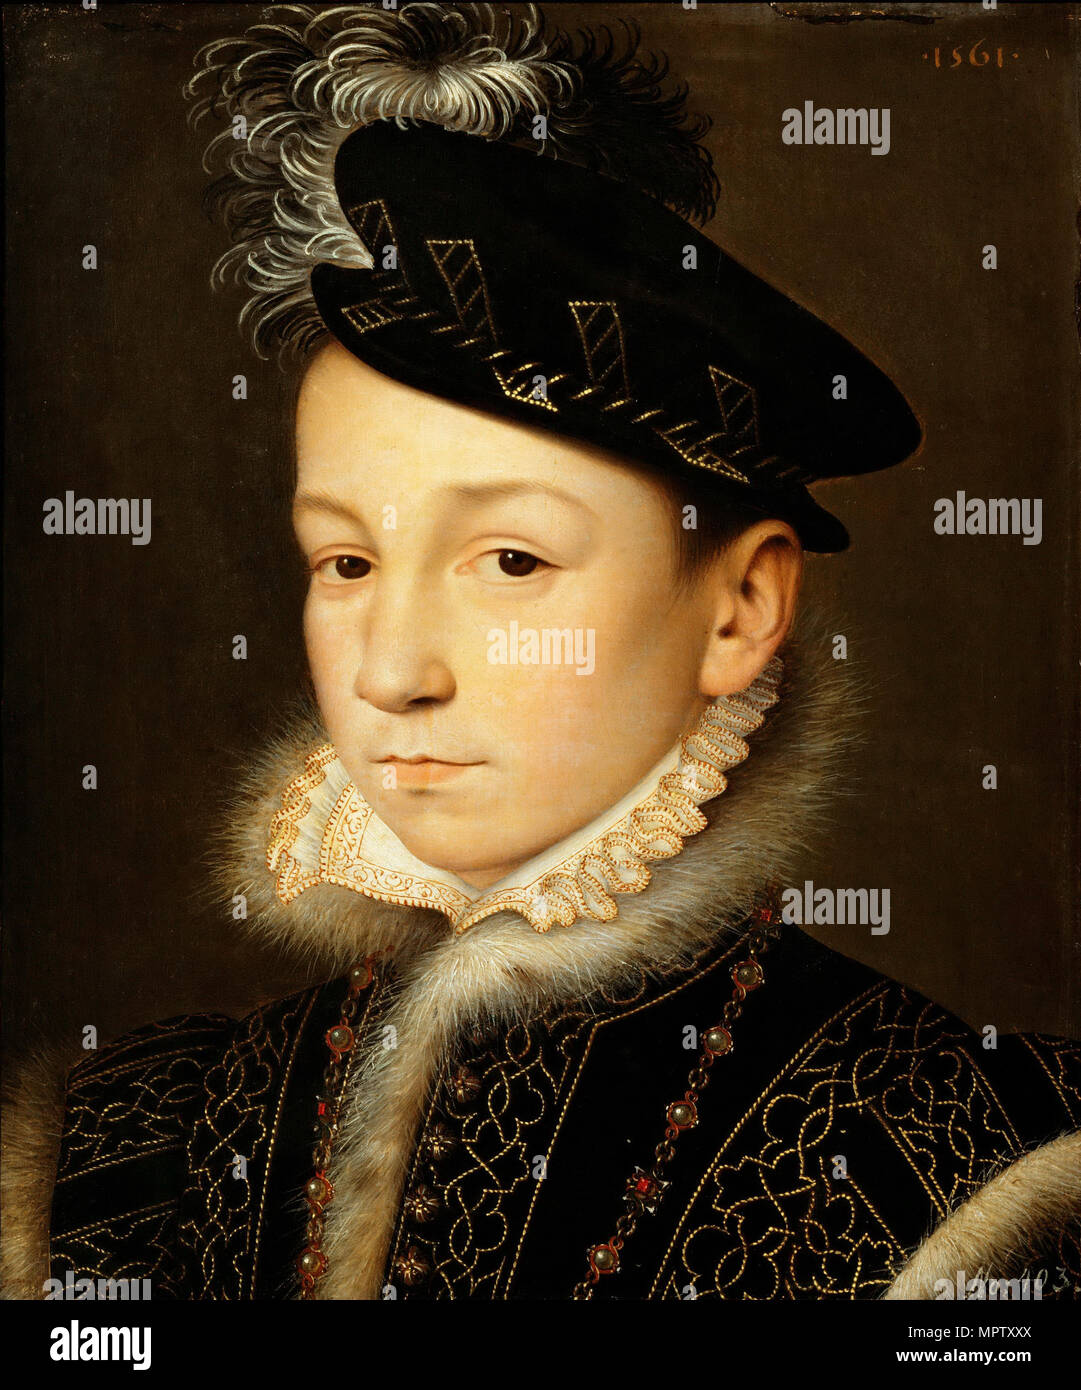 Portrait of King Charles IX of France (1550-1574). Stock Photo